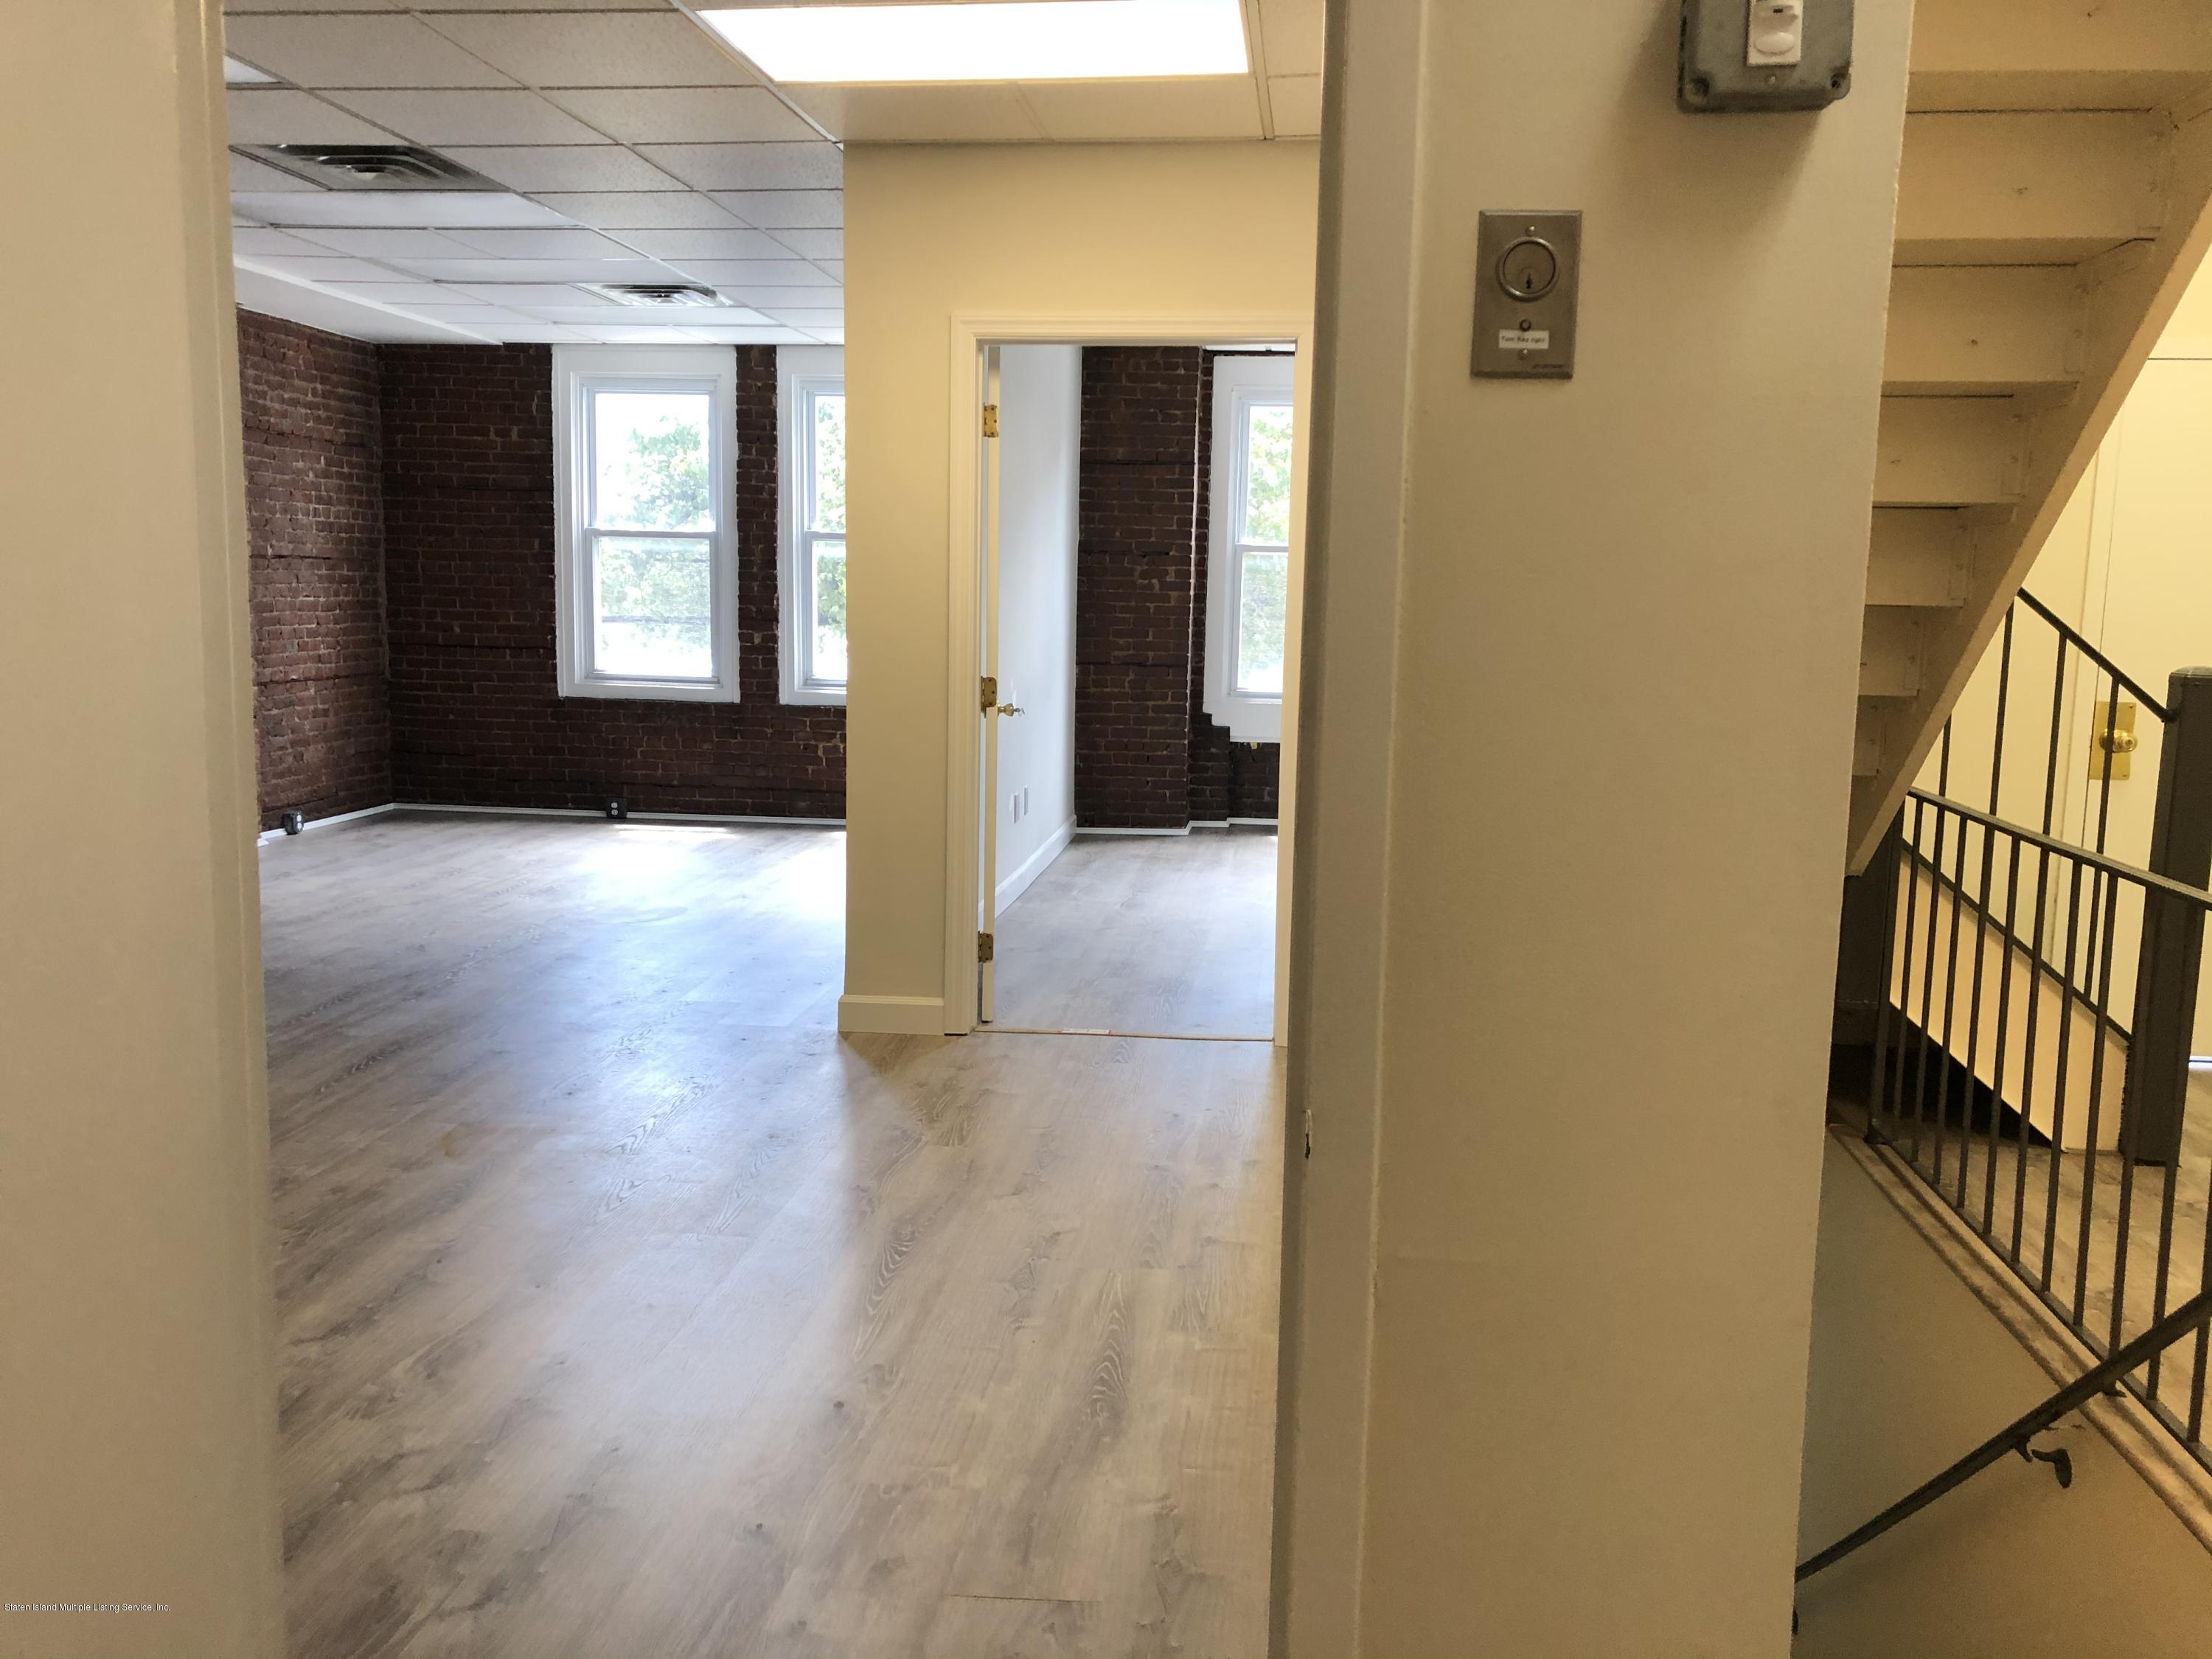 Commercial in New Brighton - 1207 Castleton Avenue 2nd Floor  Staten Island, NY 10310